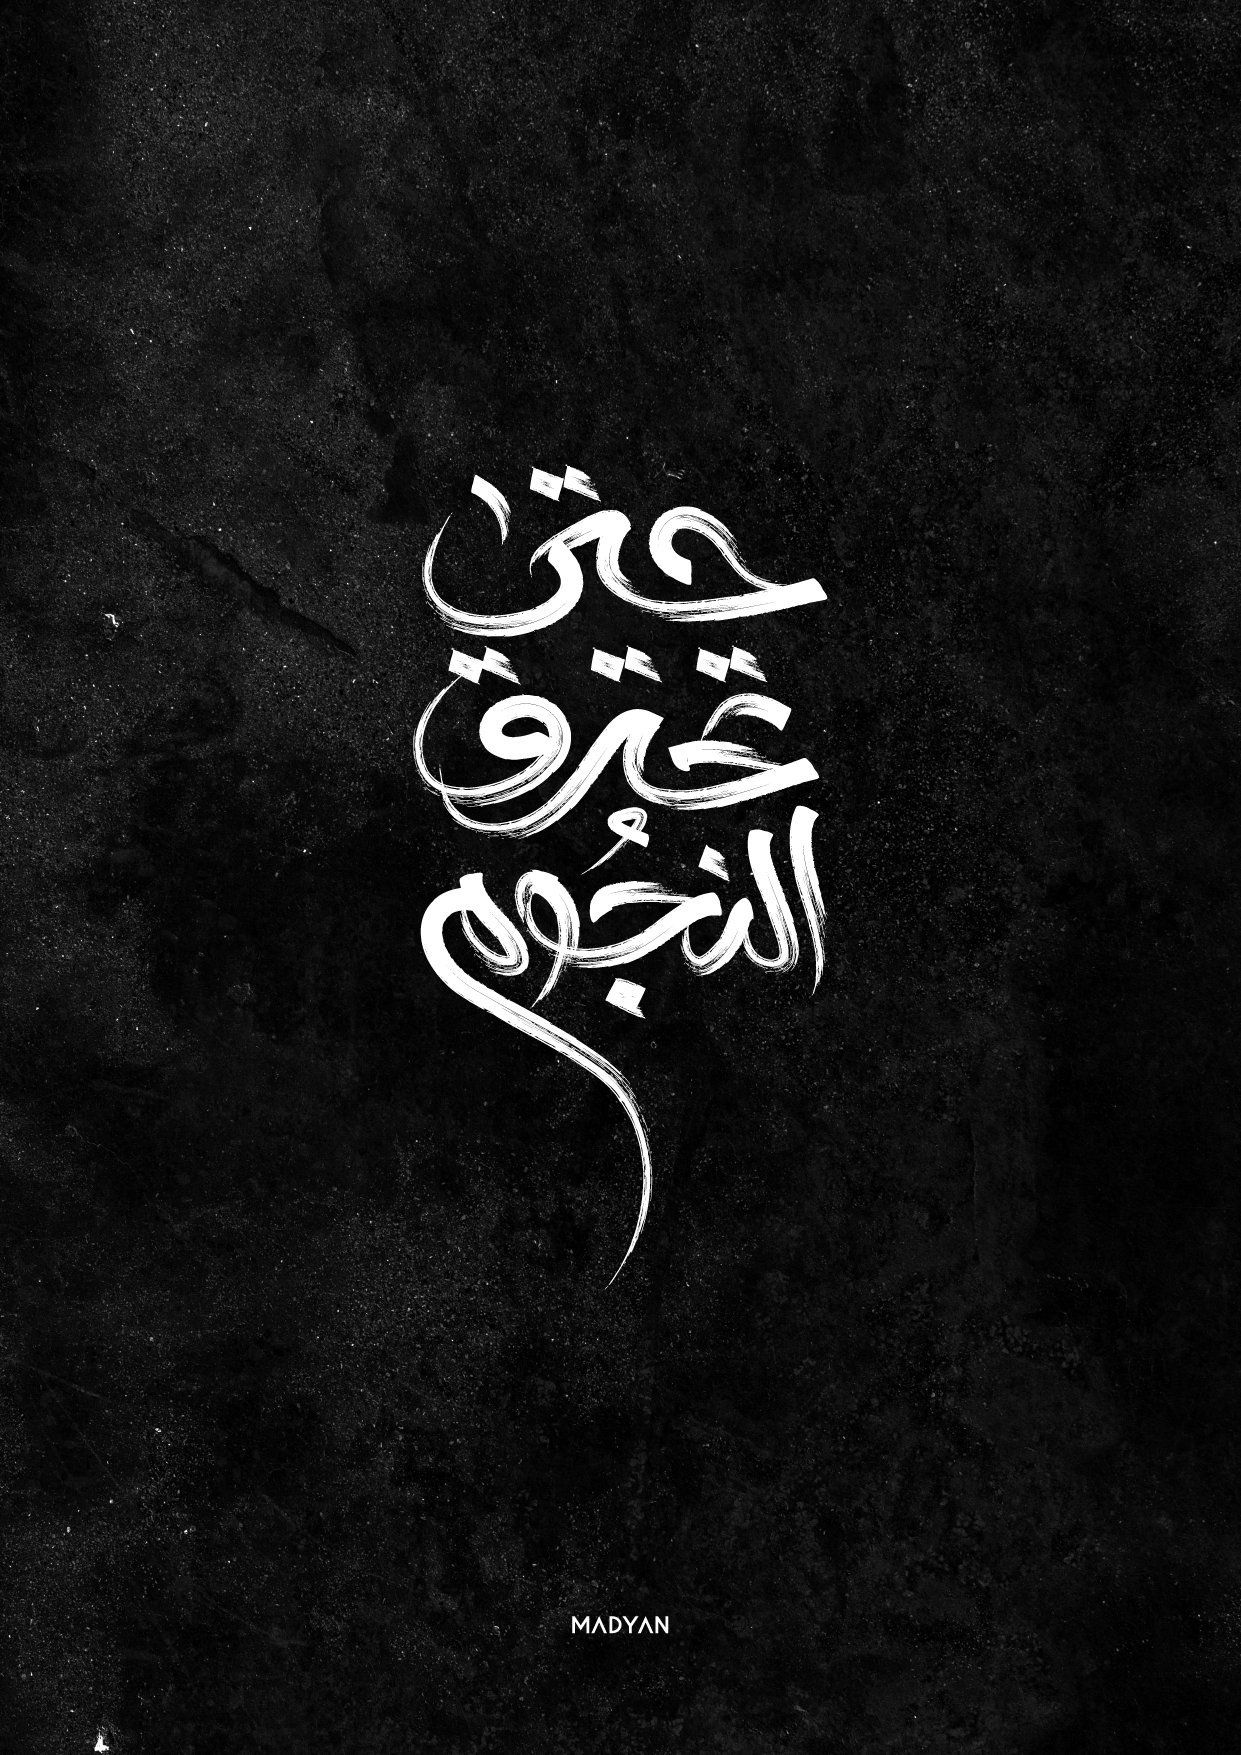 Ahmed Madyan On Twitter Calligraphy Art Quotes Calligraphy Words Graffiti Words